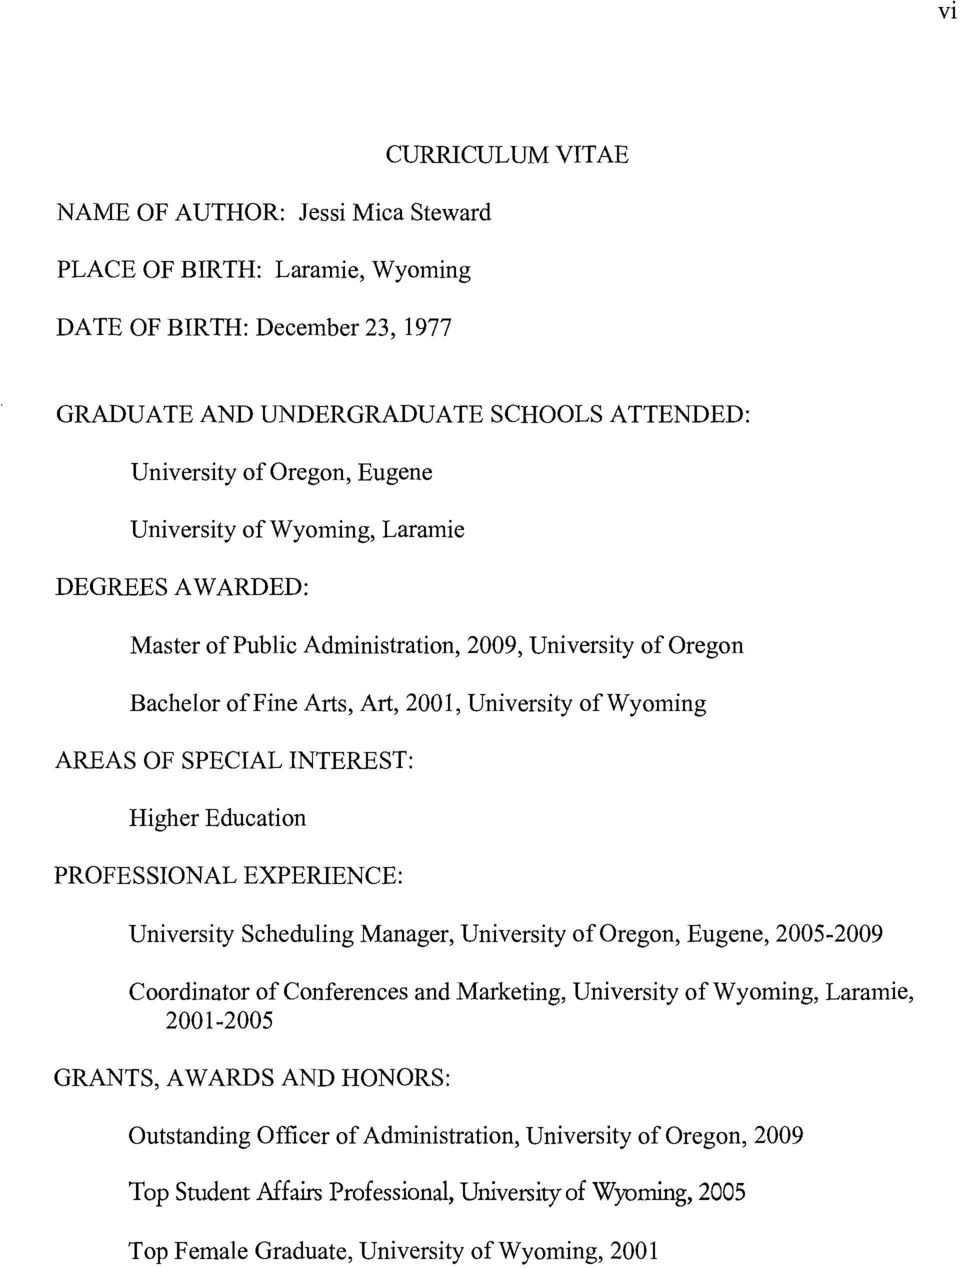 Education PROFESSIONAL EXPERIENCE: University Scheduling Manager, University oforegon, Eugene, 2005-2009 Coordinator ofconferences and Marketing, University ofwyoming, Laramie, 2001-2005